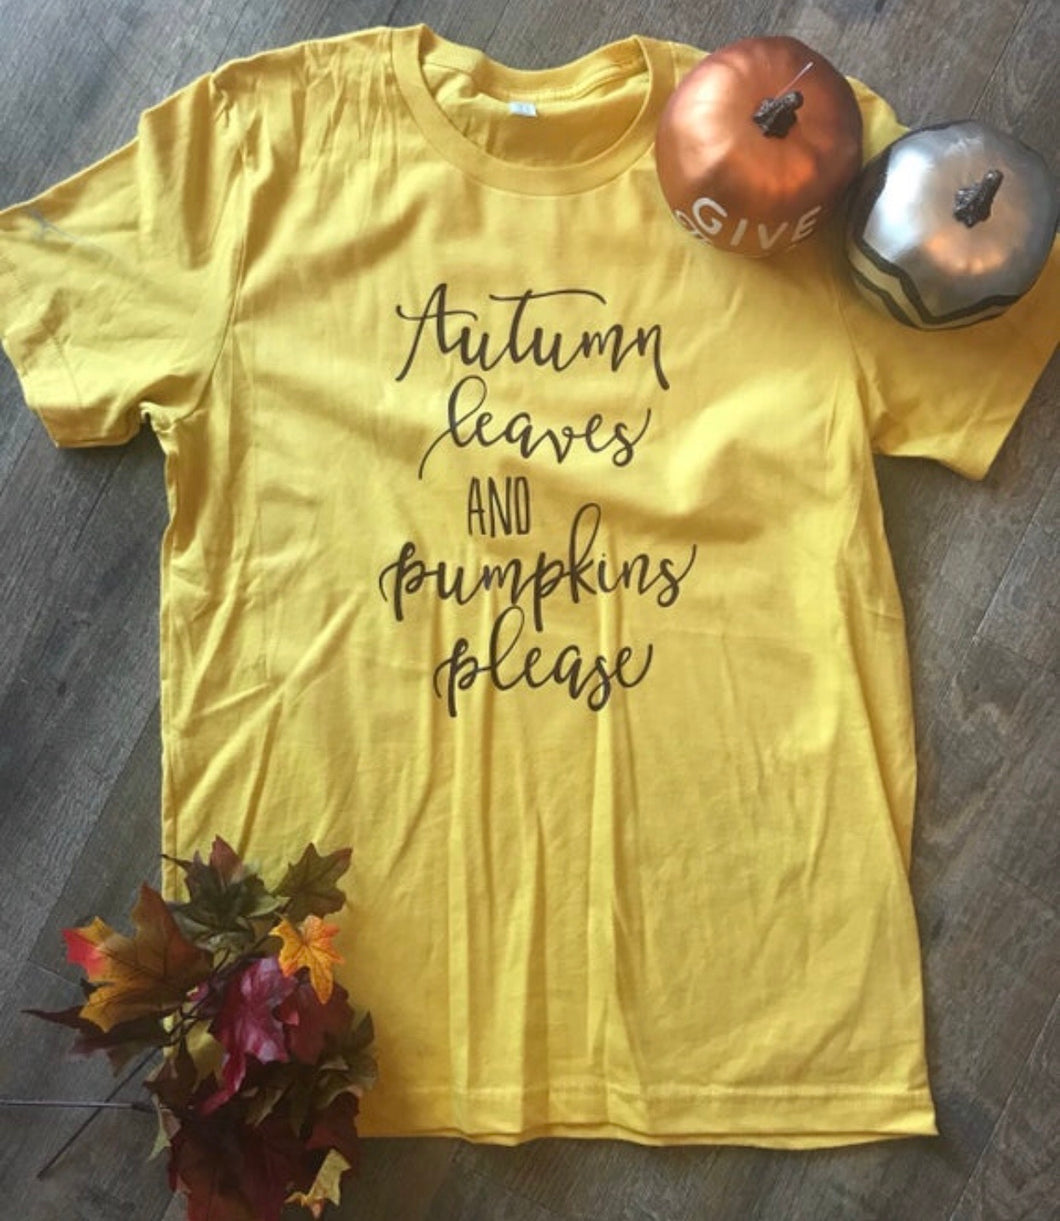 Autumn leaves and pumpkins please mustard yellow graphic tee perfect for fall graphic tee tshirt - Mavictoria Designs Hot Press Express